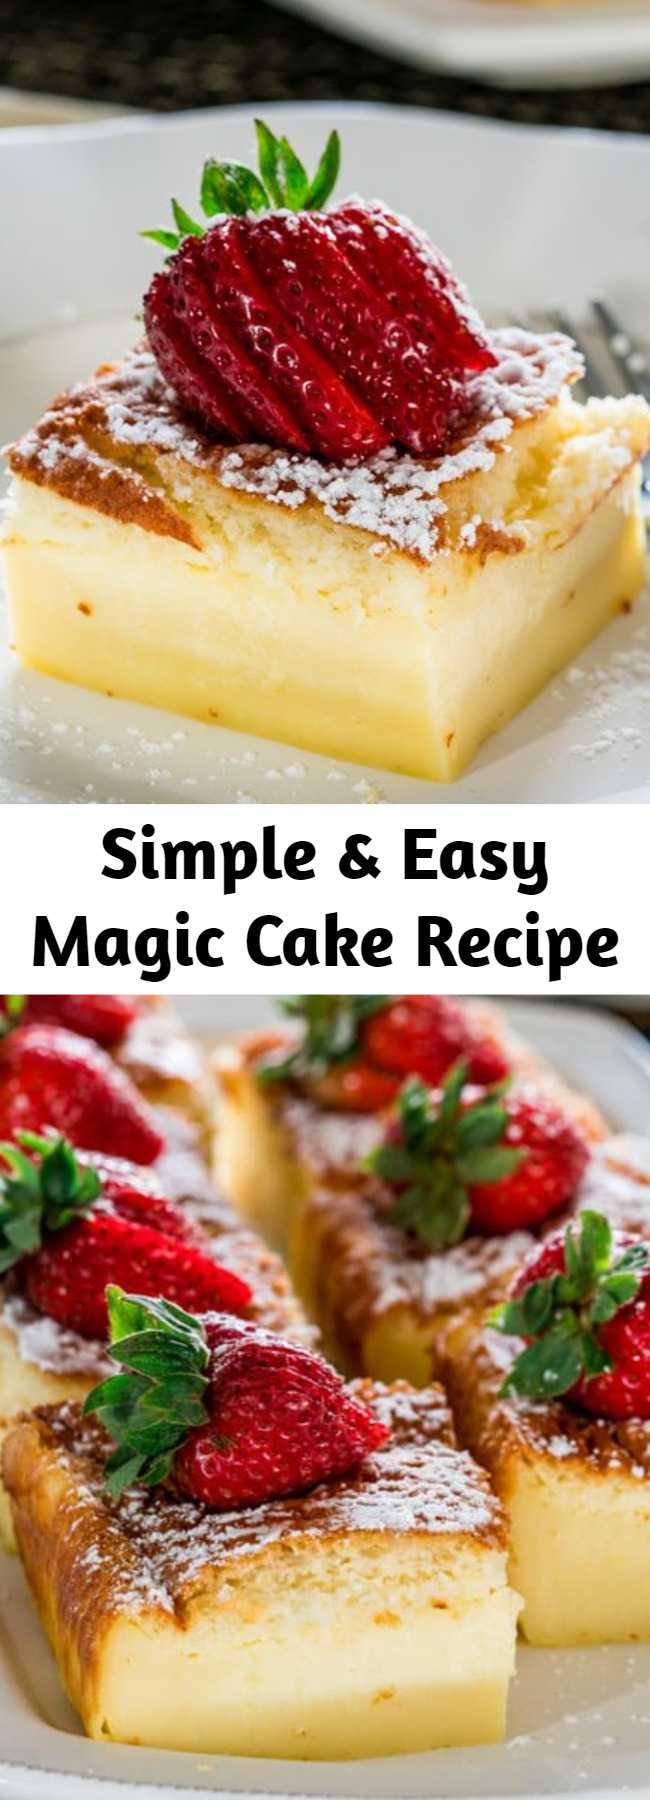 Simple & Easy Magic Cake Recipe - One simple thin batter, bake it and voila! You end up with a 3 layer cake, with a delicious custardy layer in the center. It really is magical.